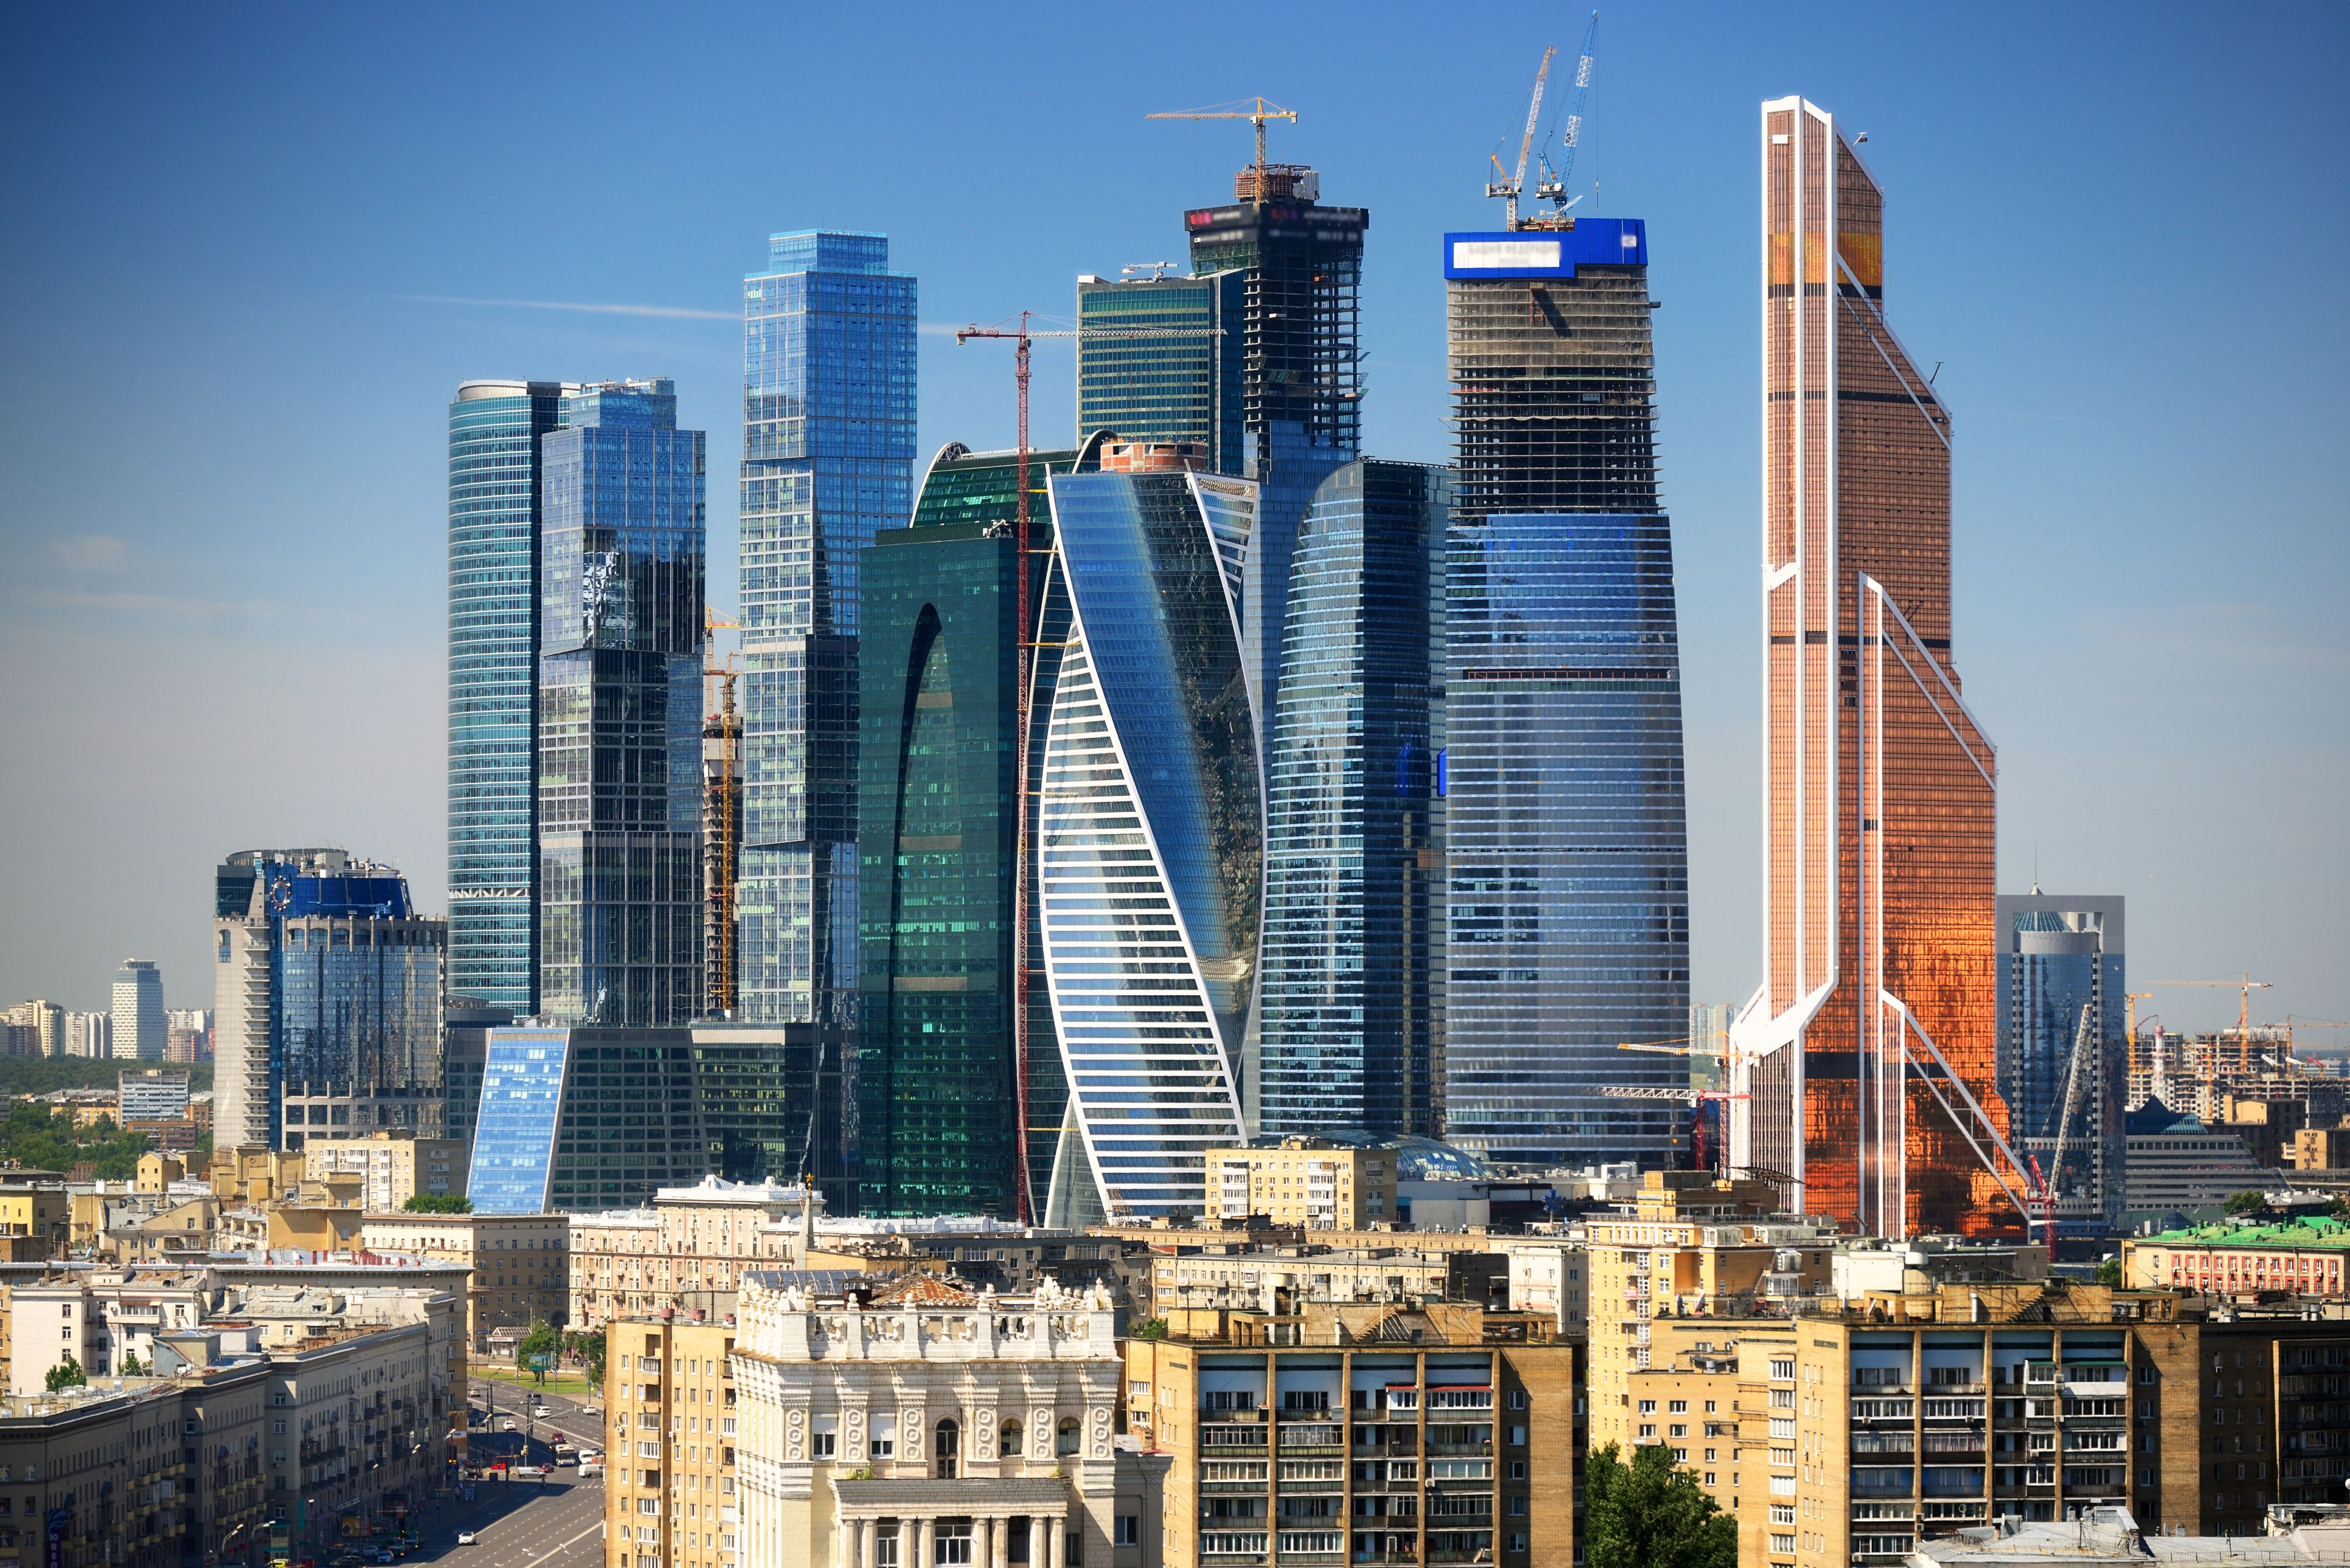 Modern skyscrapers being built in Moscow, Russia